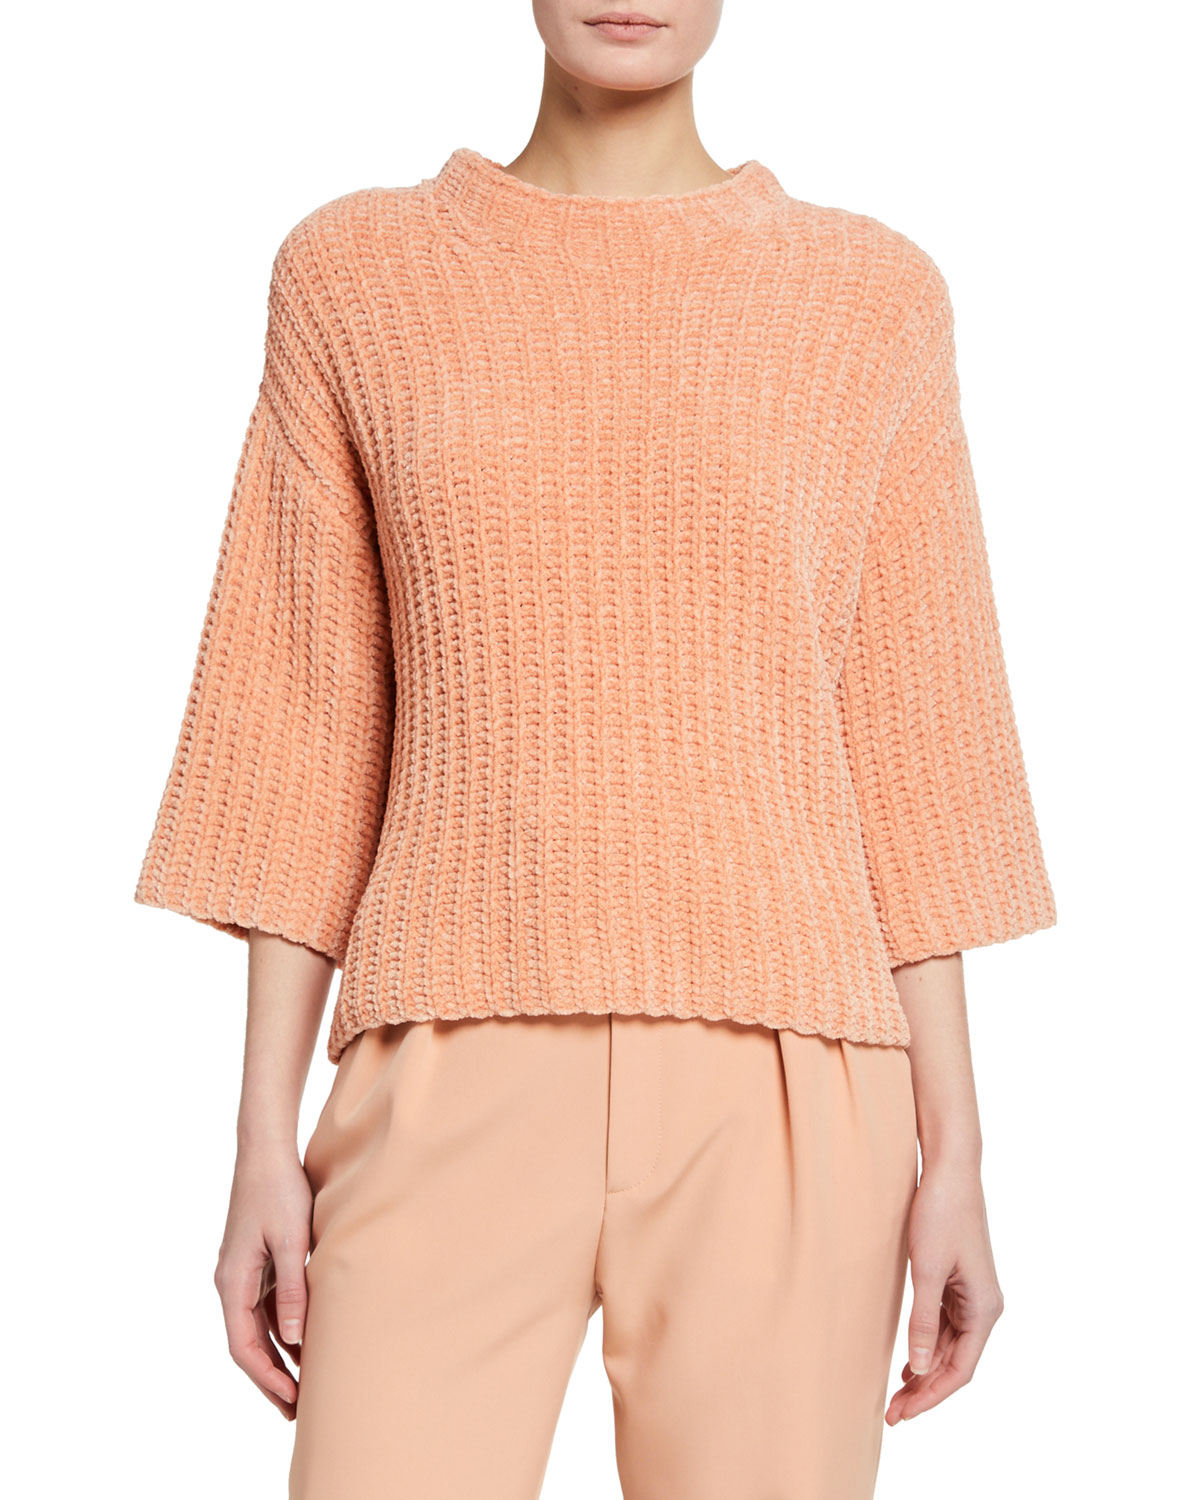 LAPOINTE Chenille Mock-Neck Elbow-Sleeve Sweater